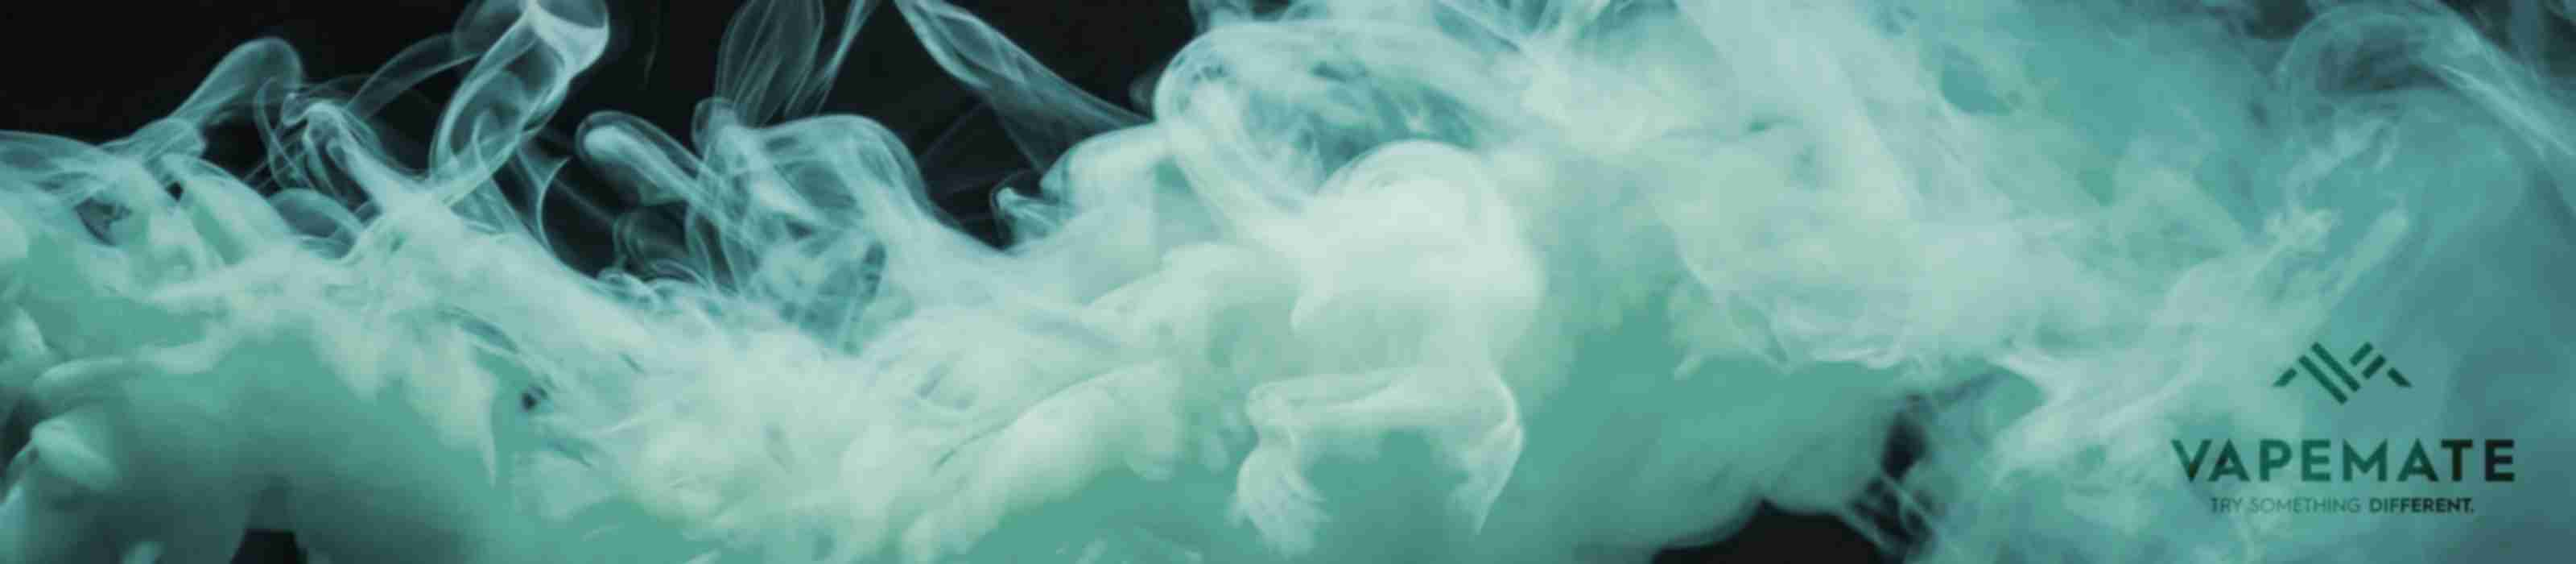 FDA Moves to Regulate E-liquid